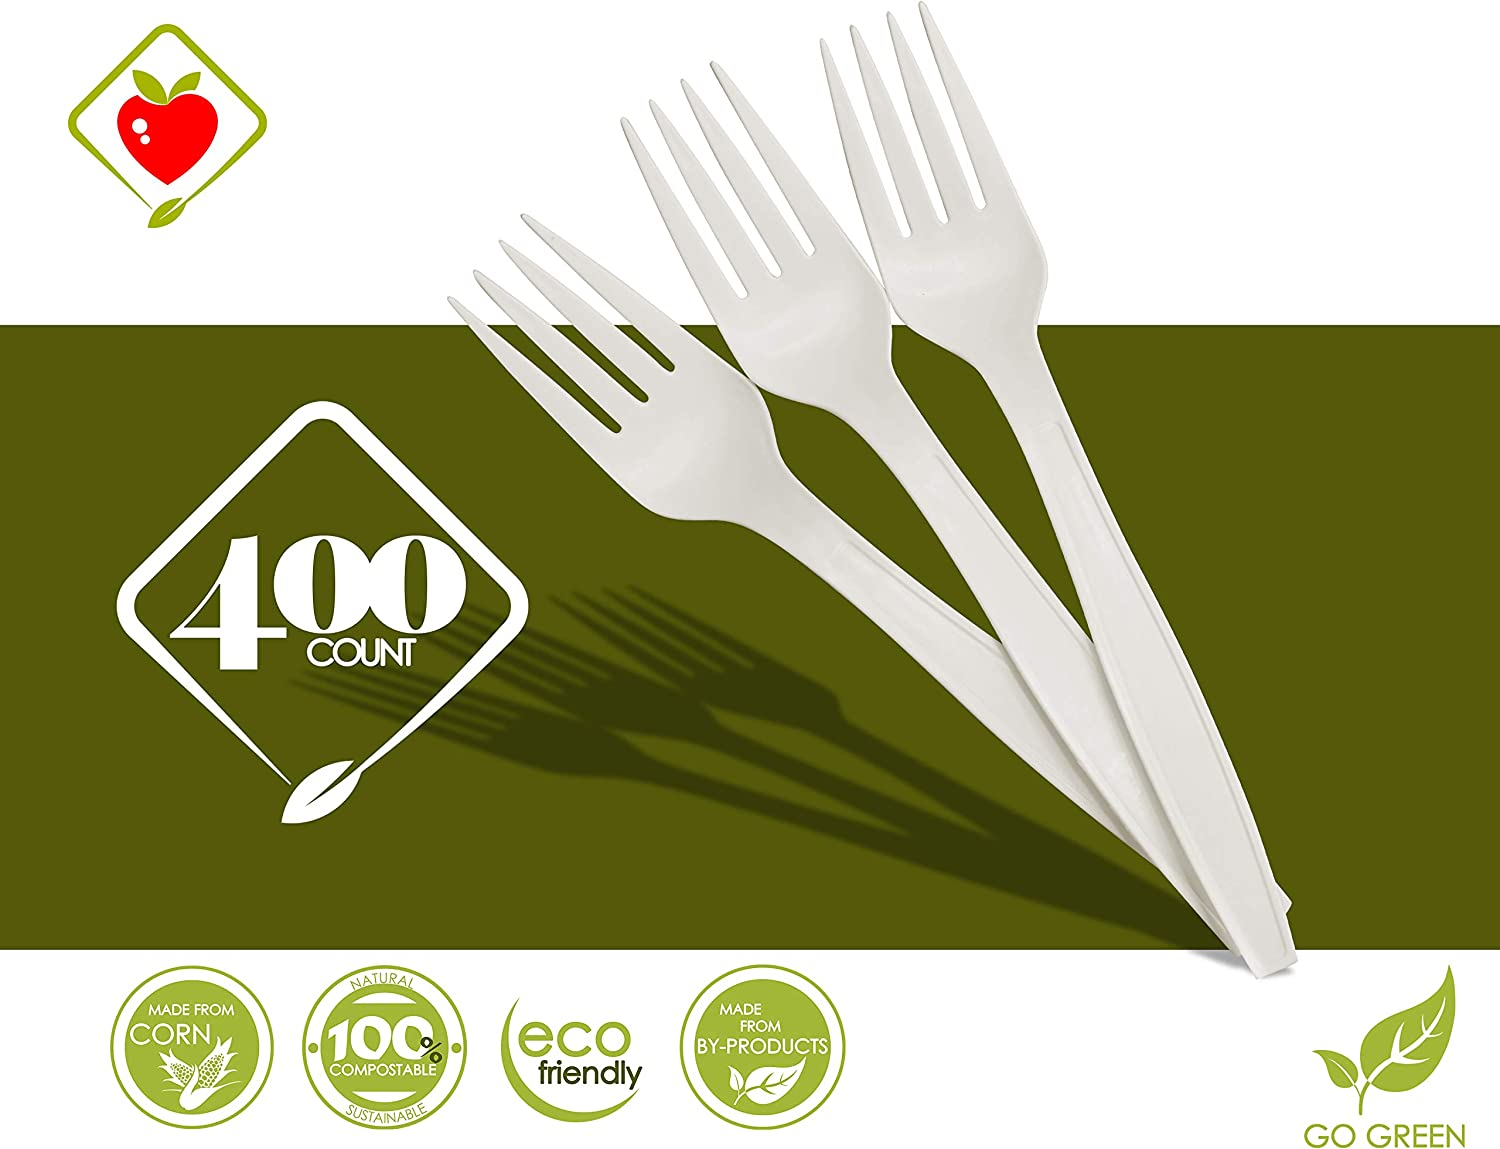 6.5 inch Long, Sustainable Cutlery Made of Corn, Dye Free, Heat Resistant 6.5 Forks Disposable Cornstarch Compostable Utensils for Soup Event Picnic Appetizer Party Tasting 800 COUNT